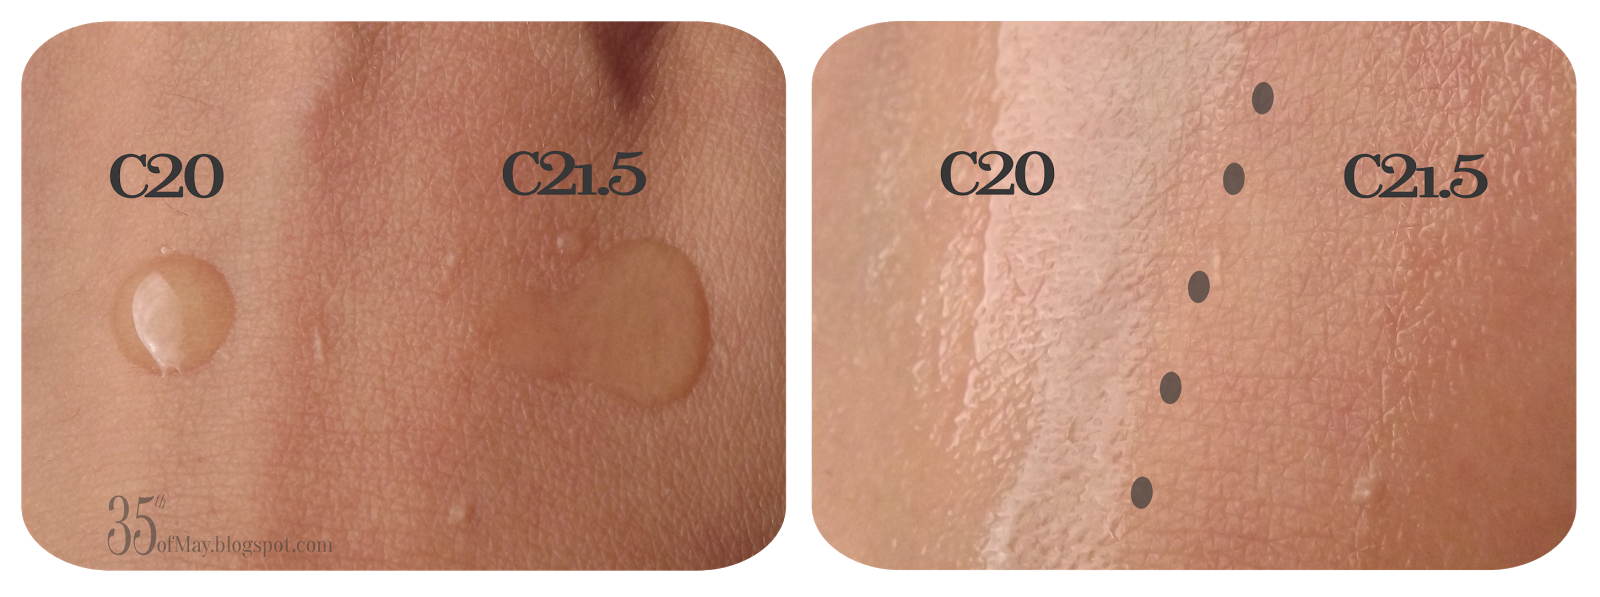 C20 vs C21.5 aka The Battle of the Vitamin C Serums swatch